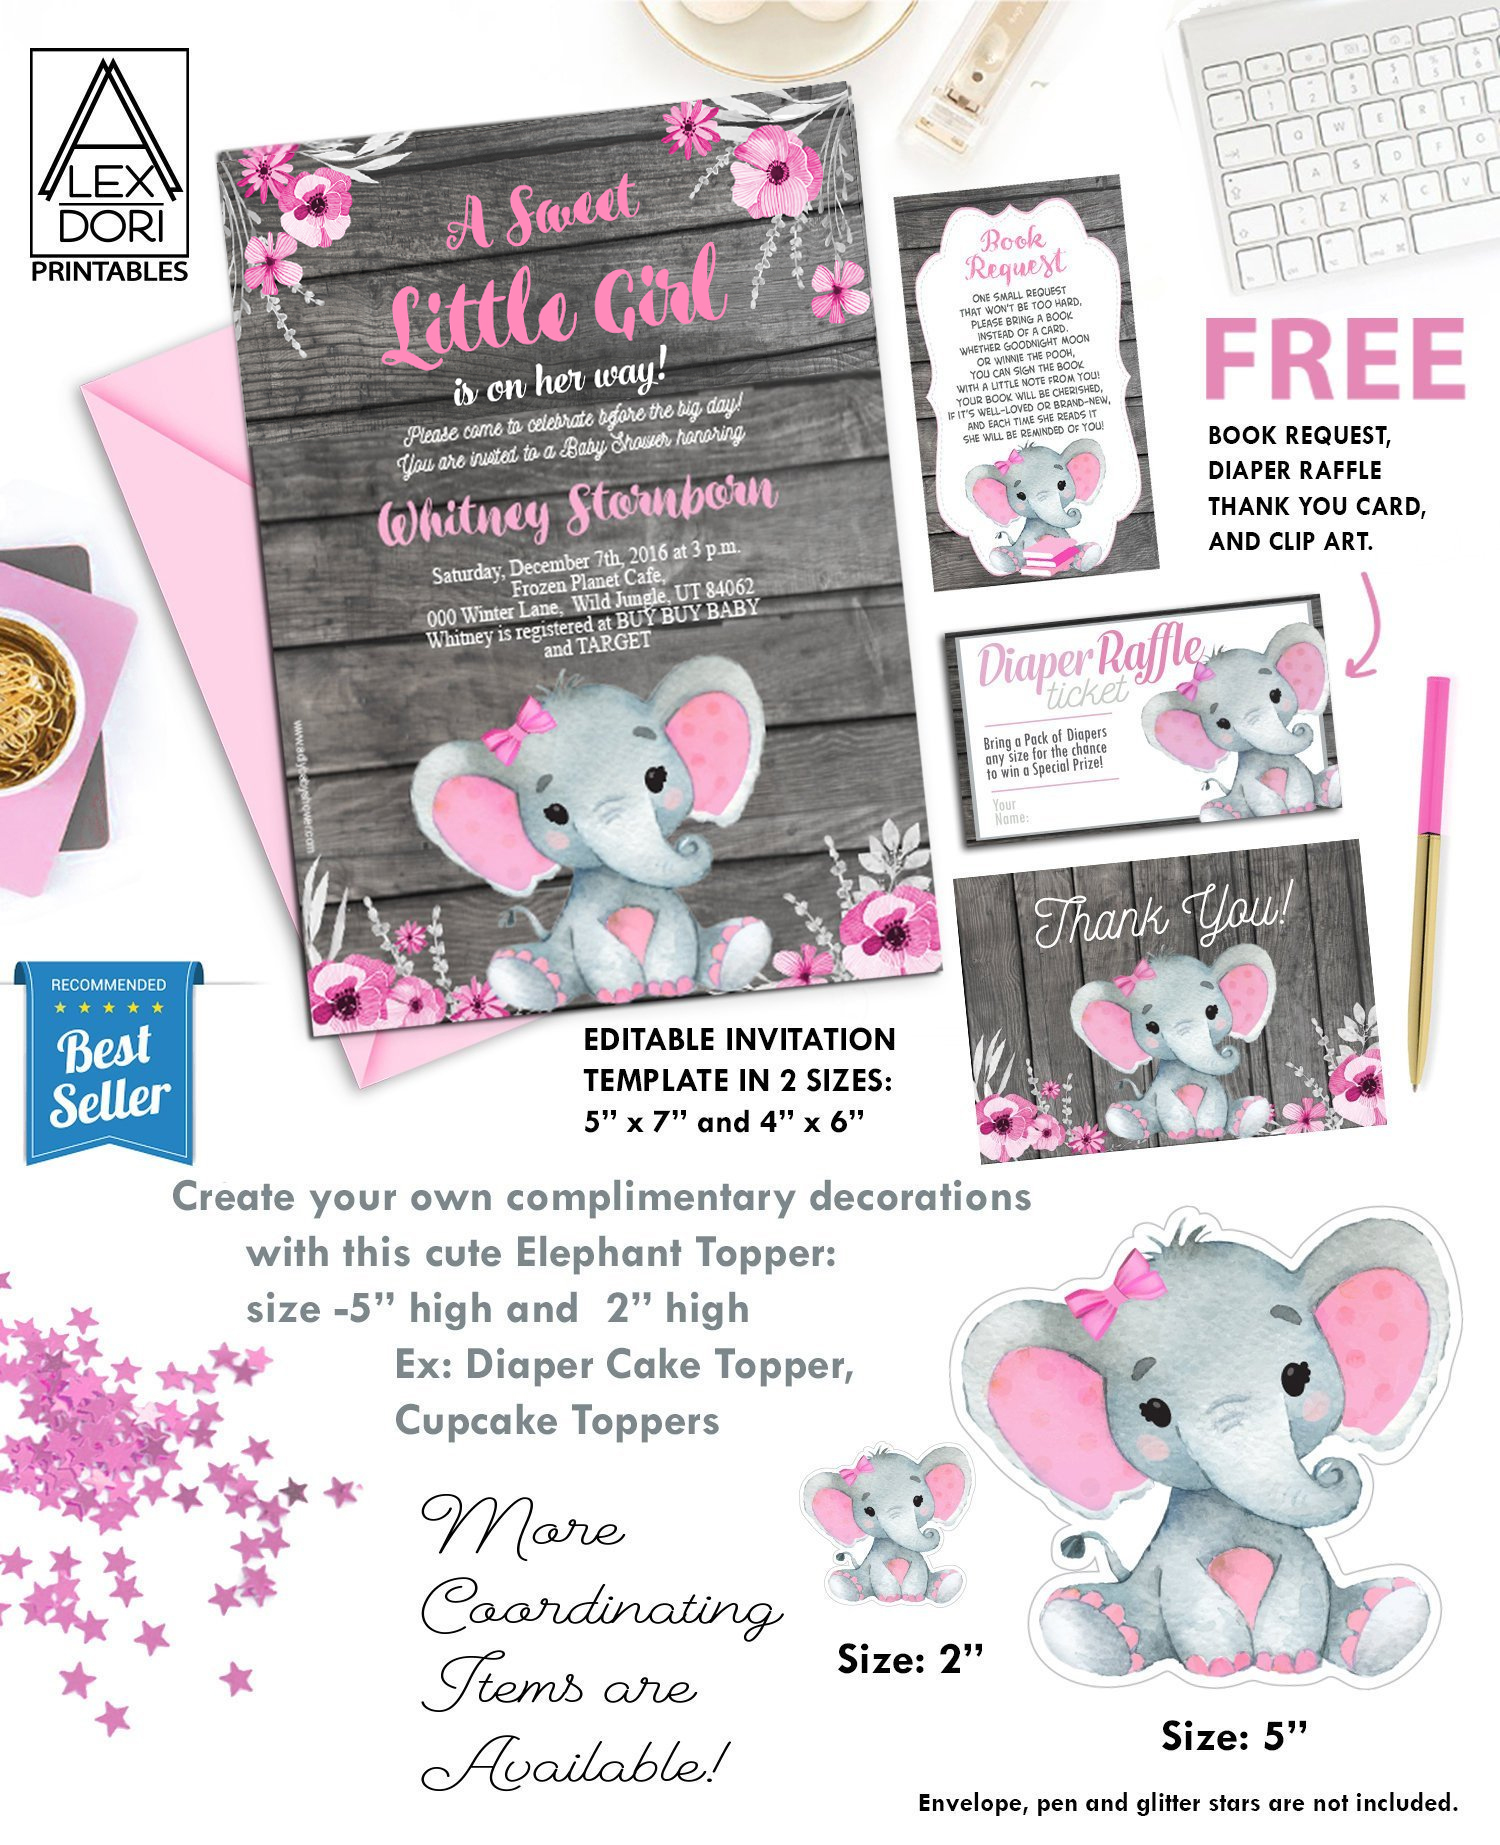 Pink Elephant Baby Shower Free Printables : elephant, shower, printables, Shower, Invitation, Elephant, Flowers,, Rustic, Wooden, Background, Invitations, Digital, Party, Designs